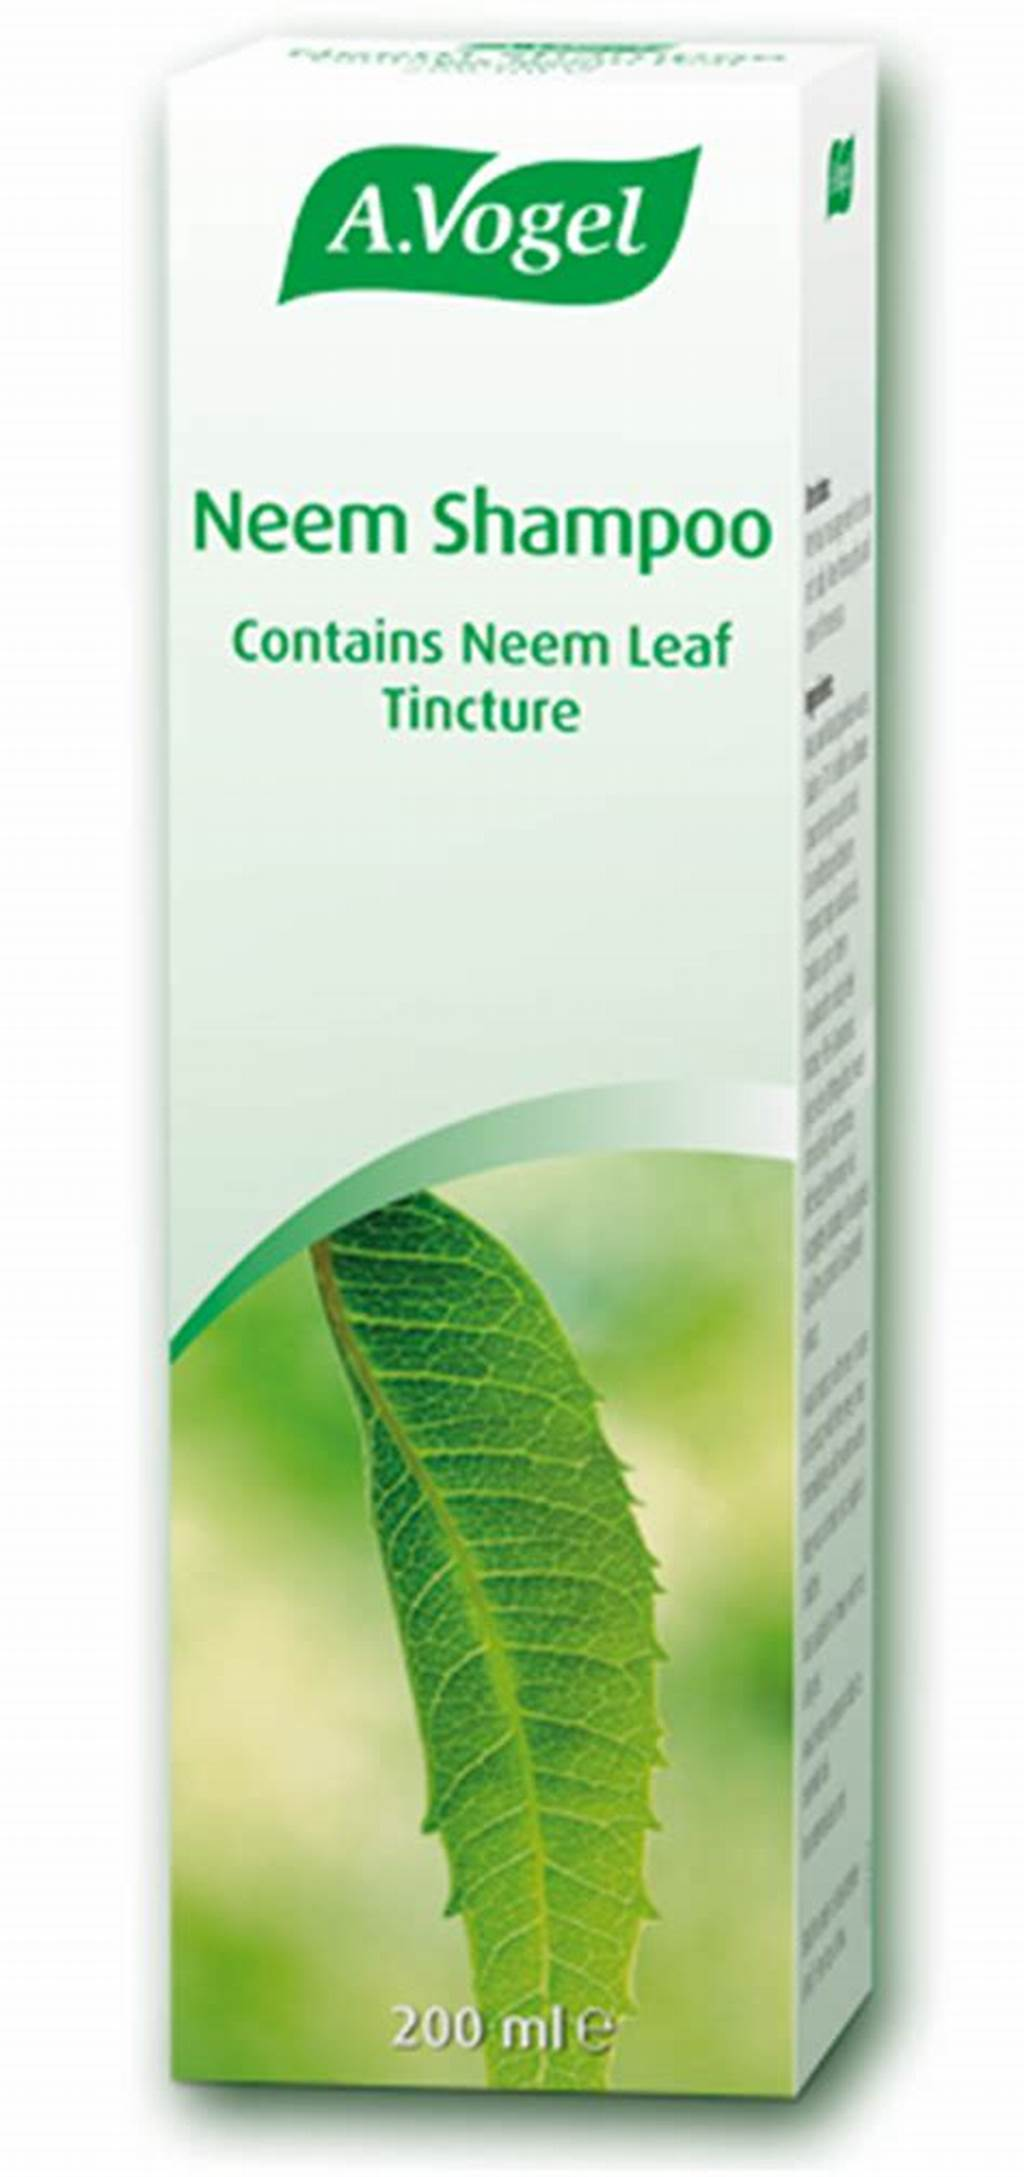 #Neem #Shampoo #From #A